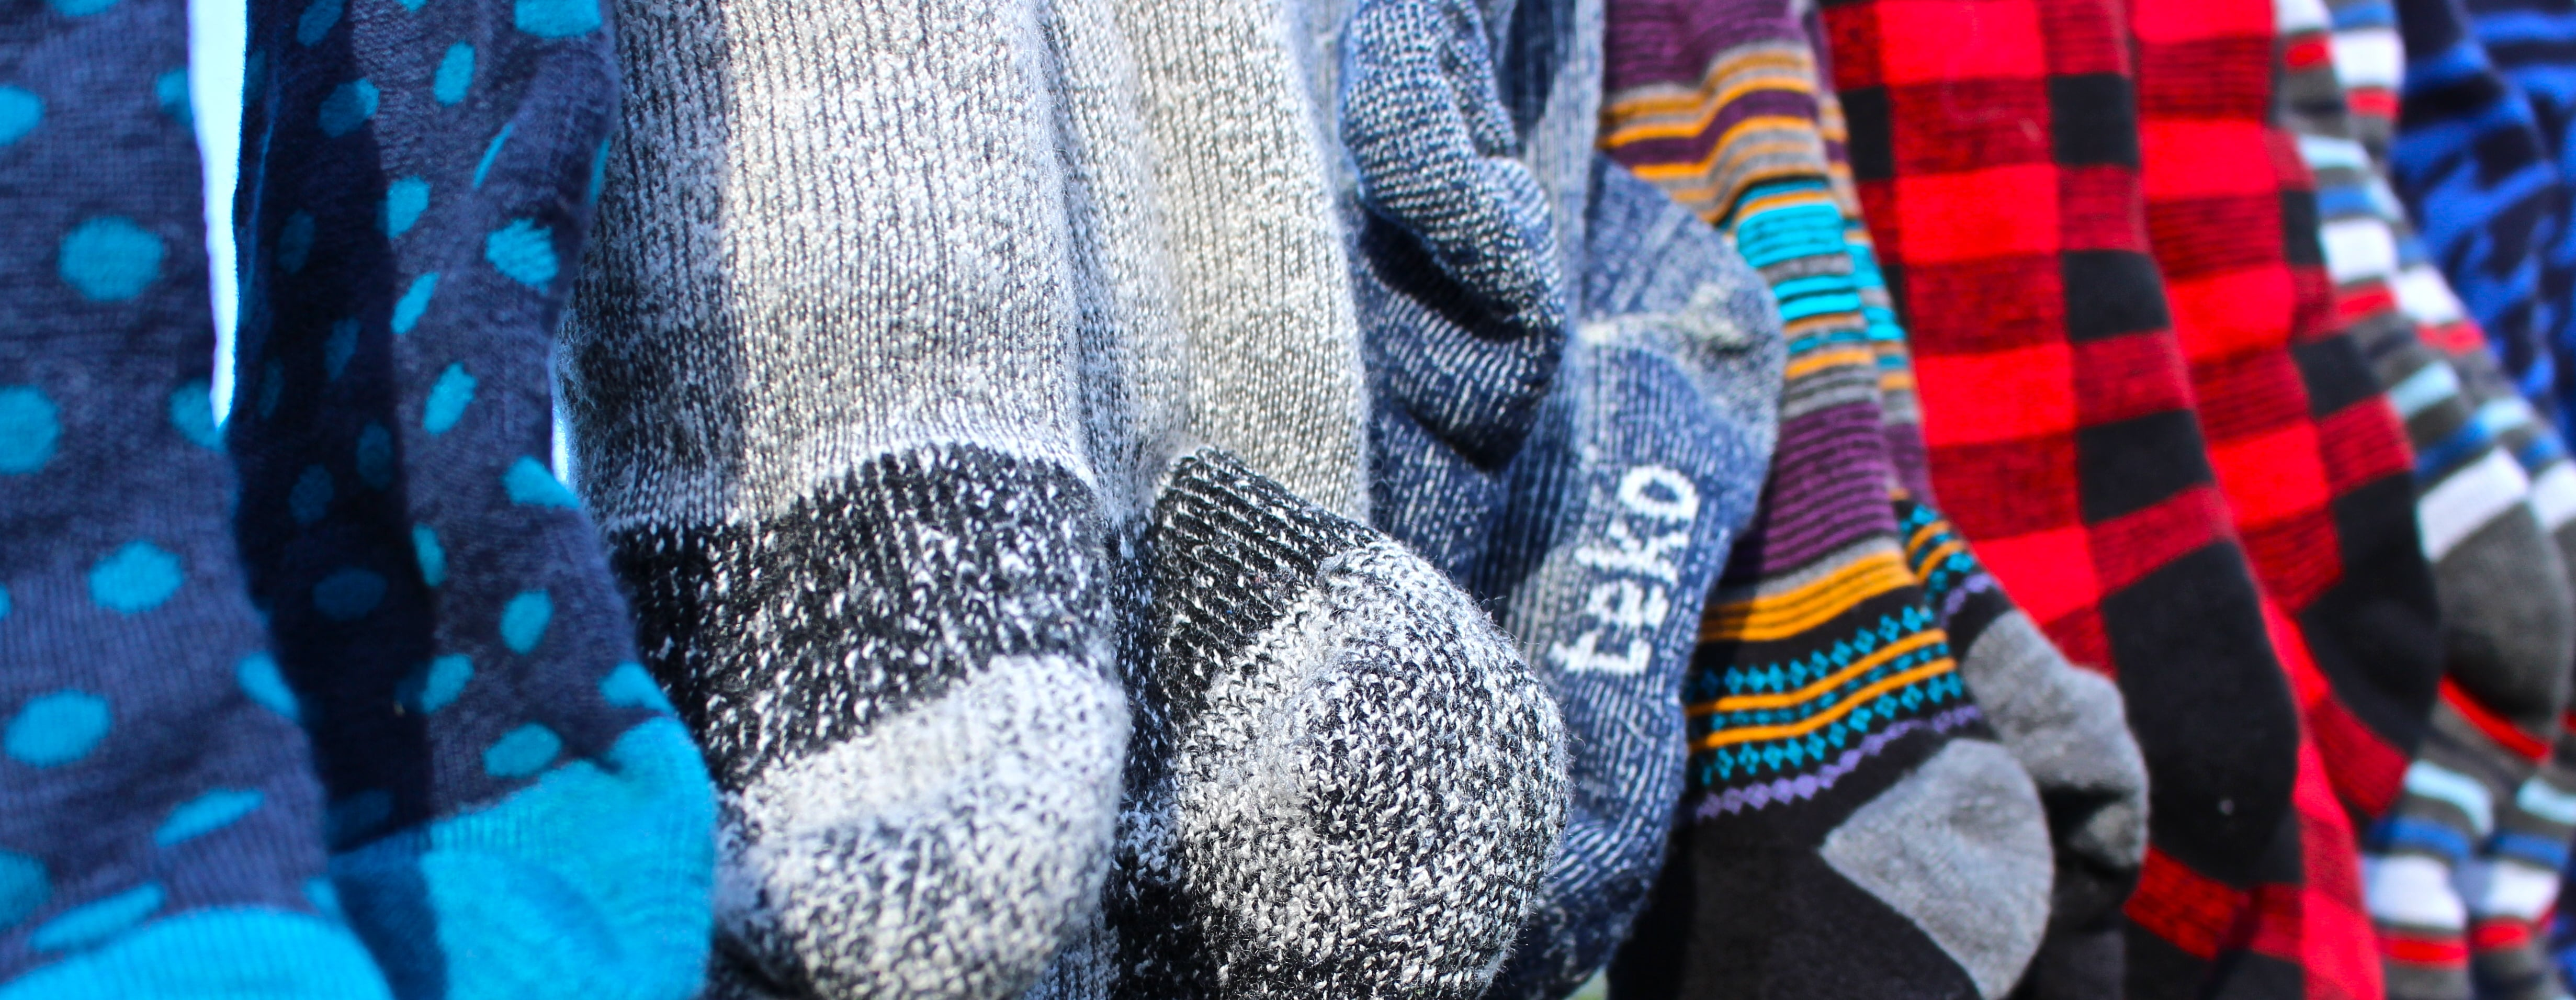 Kit Review: Teko Socks